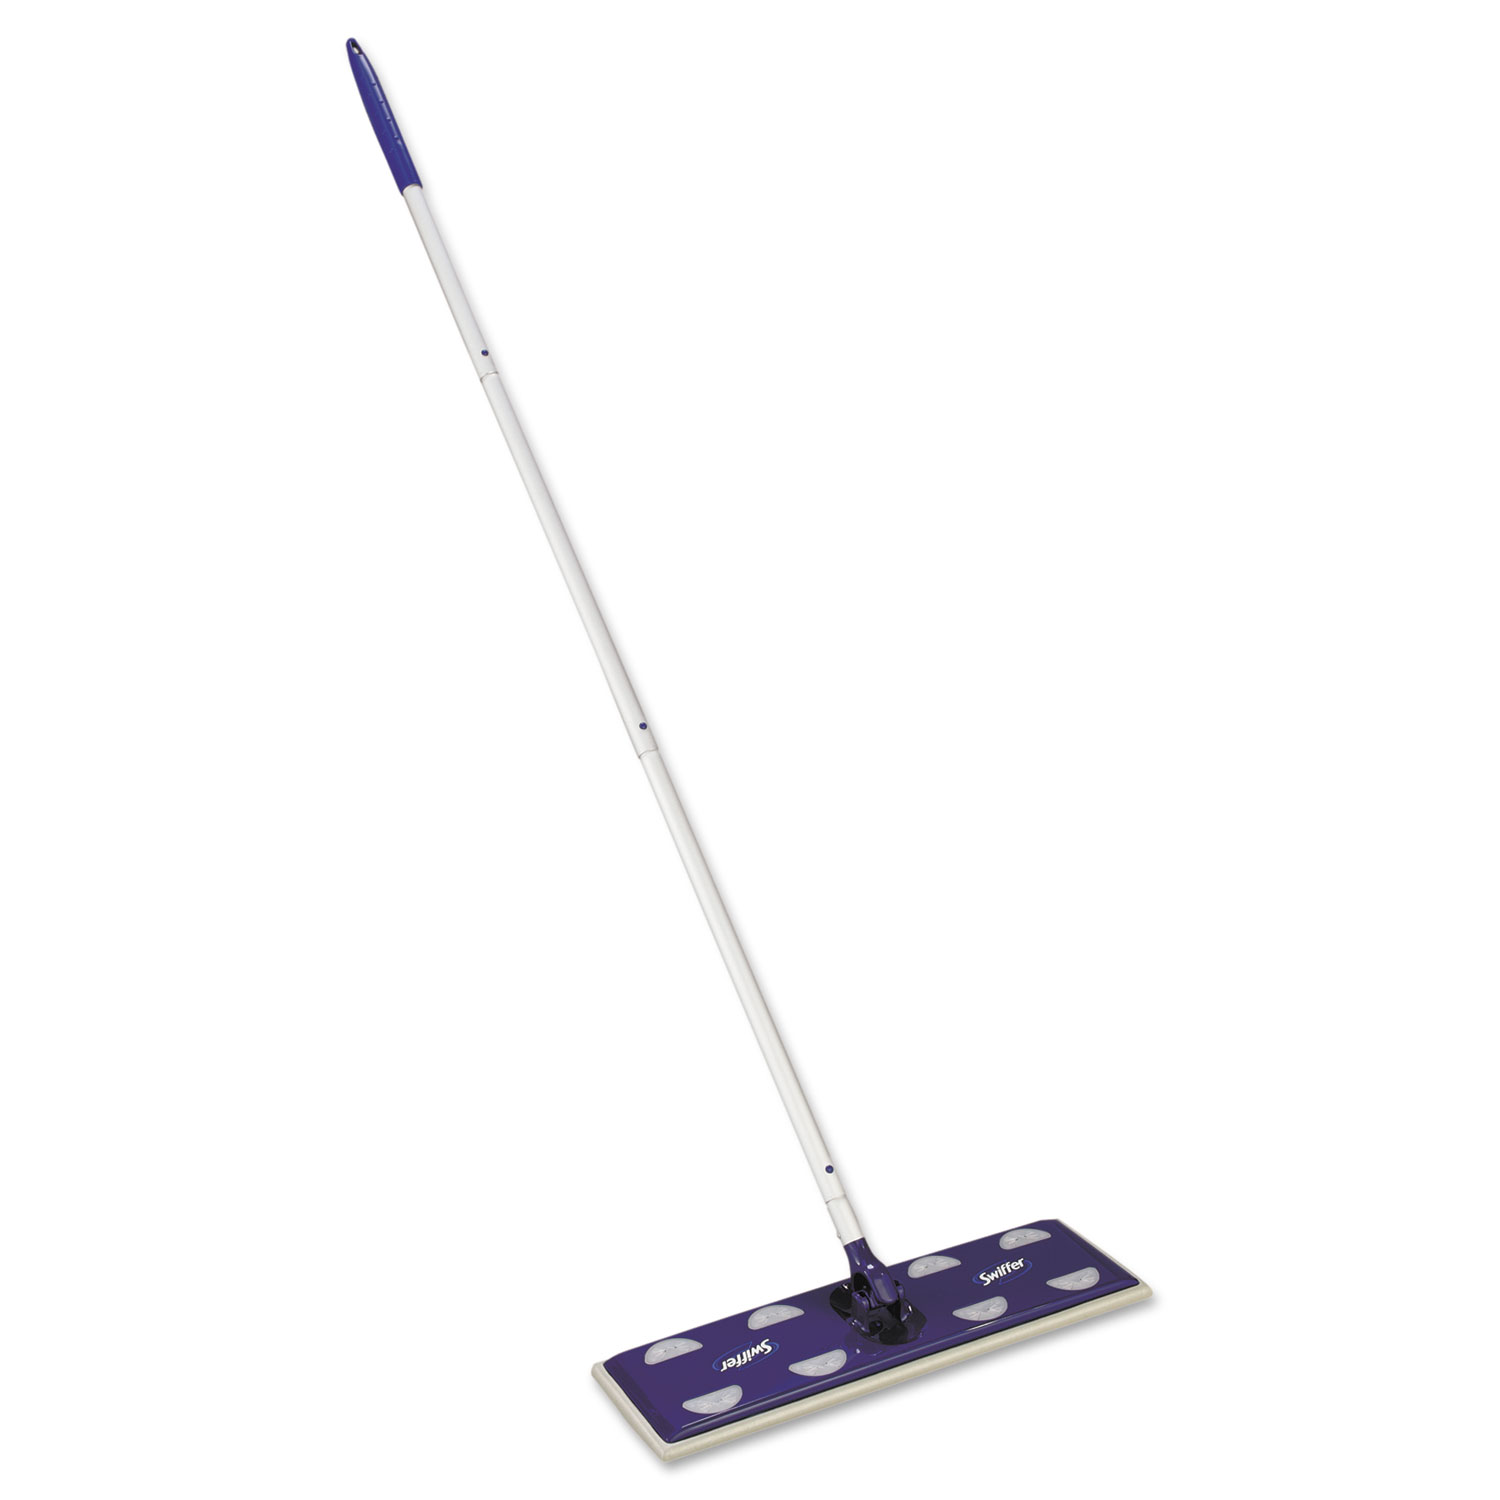 Pgc37108 Swiffer Sweeper Mop Zuma